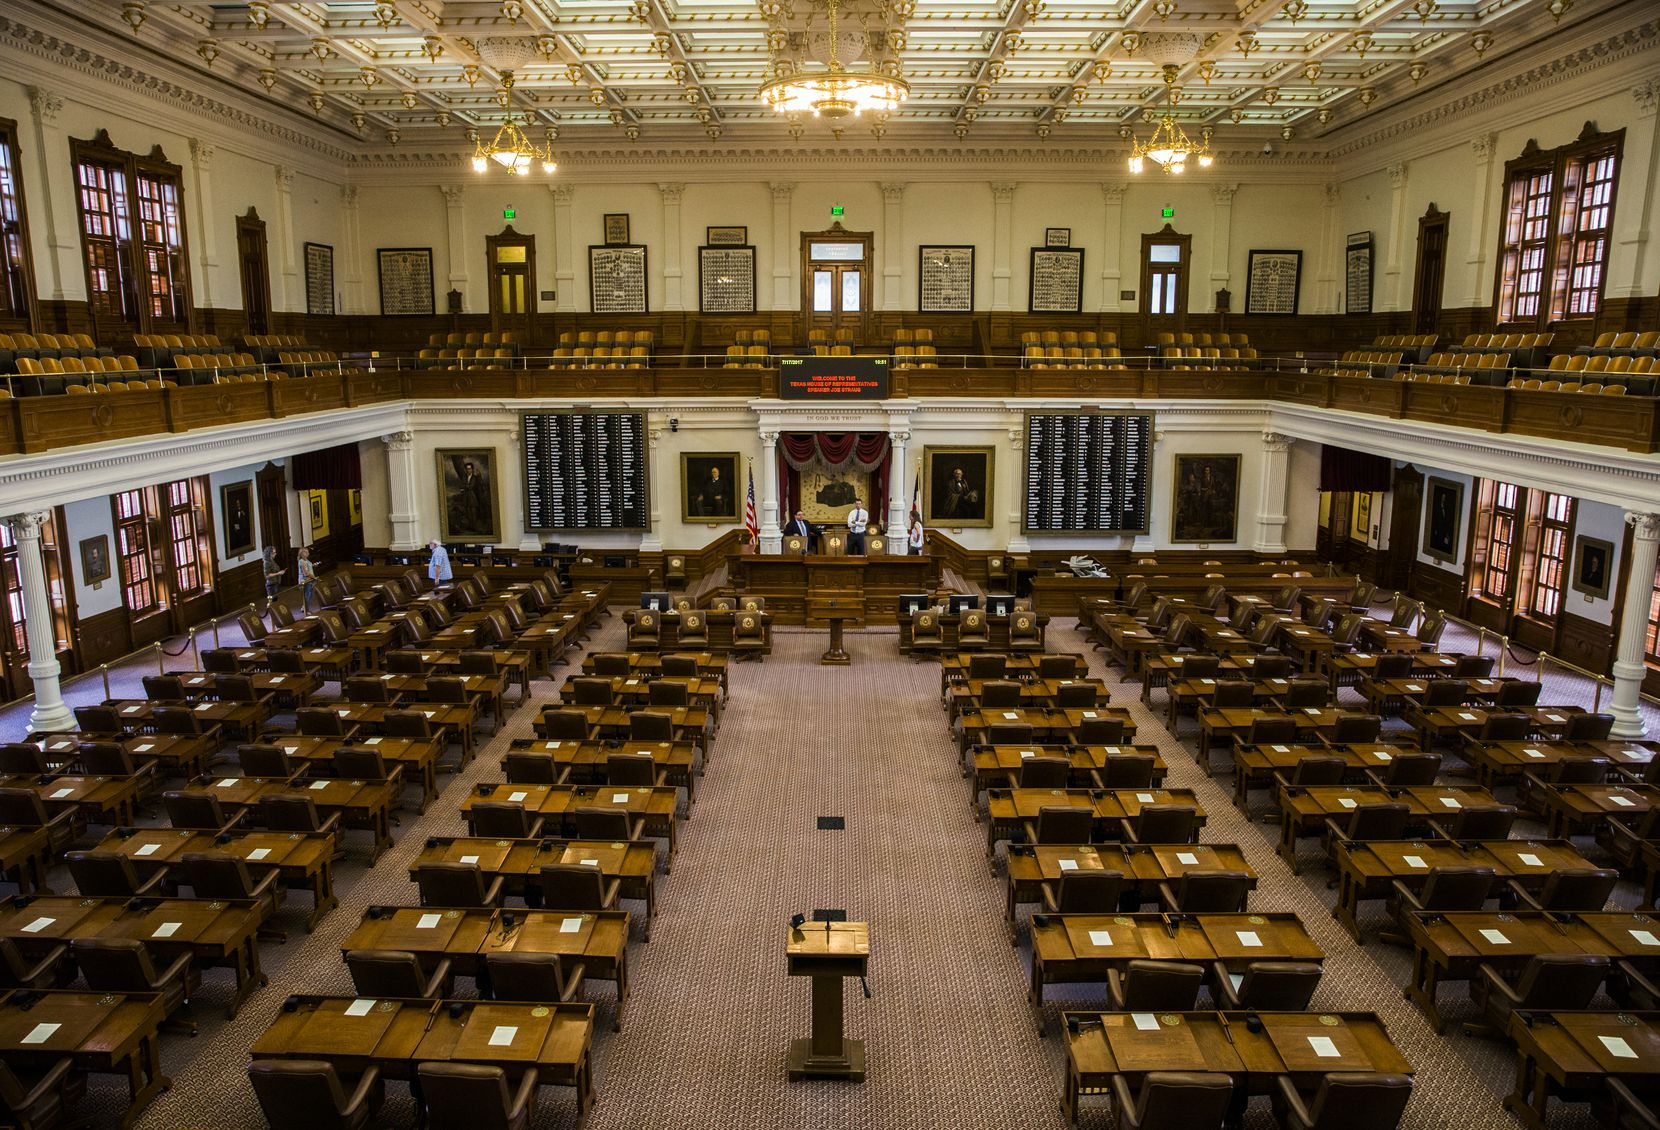 Democrats picked up 12 seats in the Texas House, meaning that in January, they will hold 67 seats in the 150-member chamber.